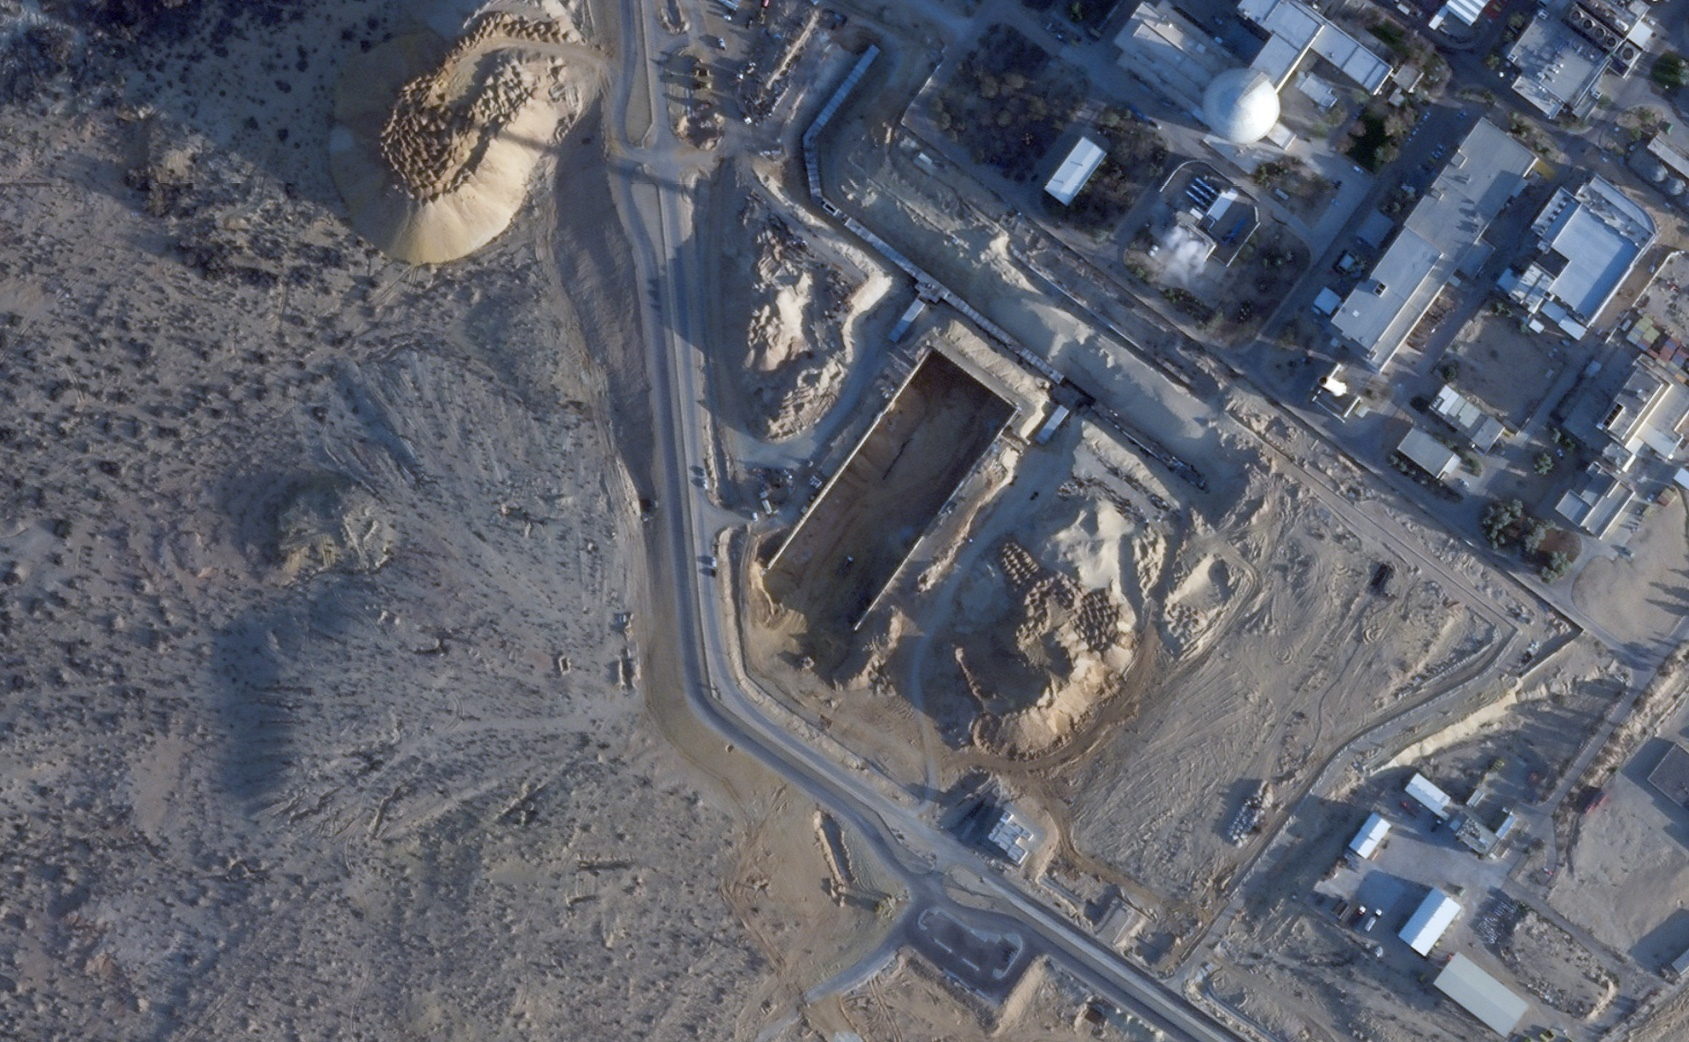 This Feb. 22, 2021, satellite photo shows construction near the Shimon Peres Negev Nuclear Research Center, not far from the city of Dimona, Israel. A long-secretive Israeli nuclear facility that gave birth to its undeclared atomic weapons program is undergoing what appears to be its biggest construction project in decades, according to analysis by AP. (Planet Labs Inc. via AP)